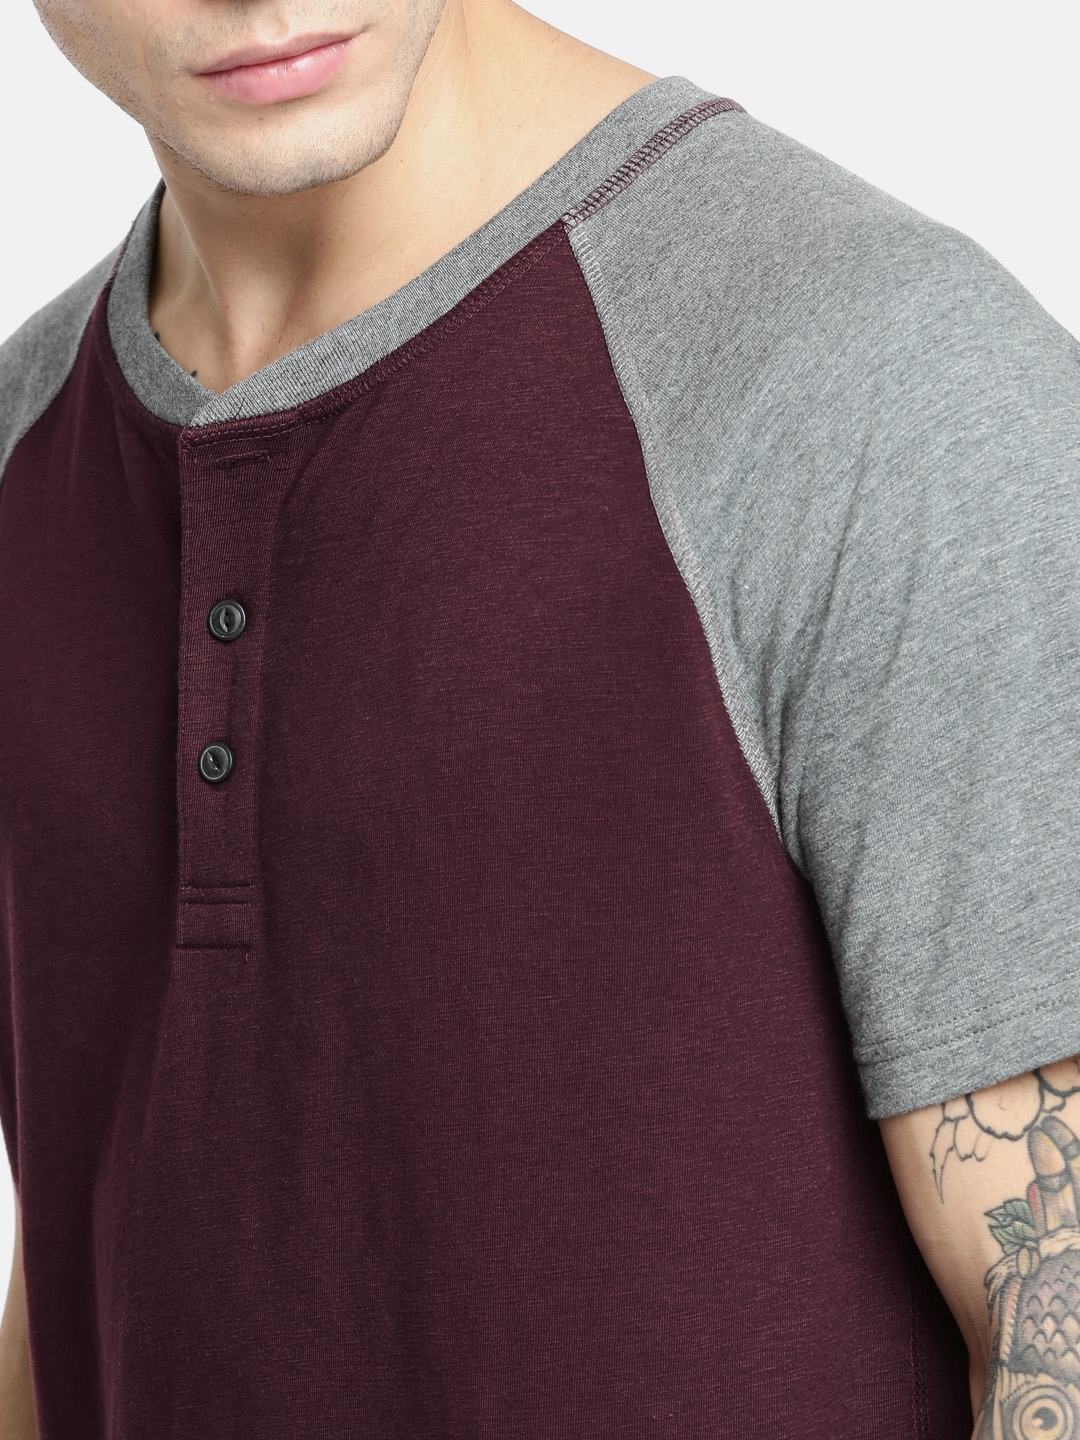 42c58439 Buy AMERICAN EAGLE OUTFITTERS Men Maroon Solid Henley Neck T Shirt ...